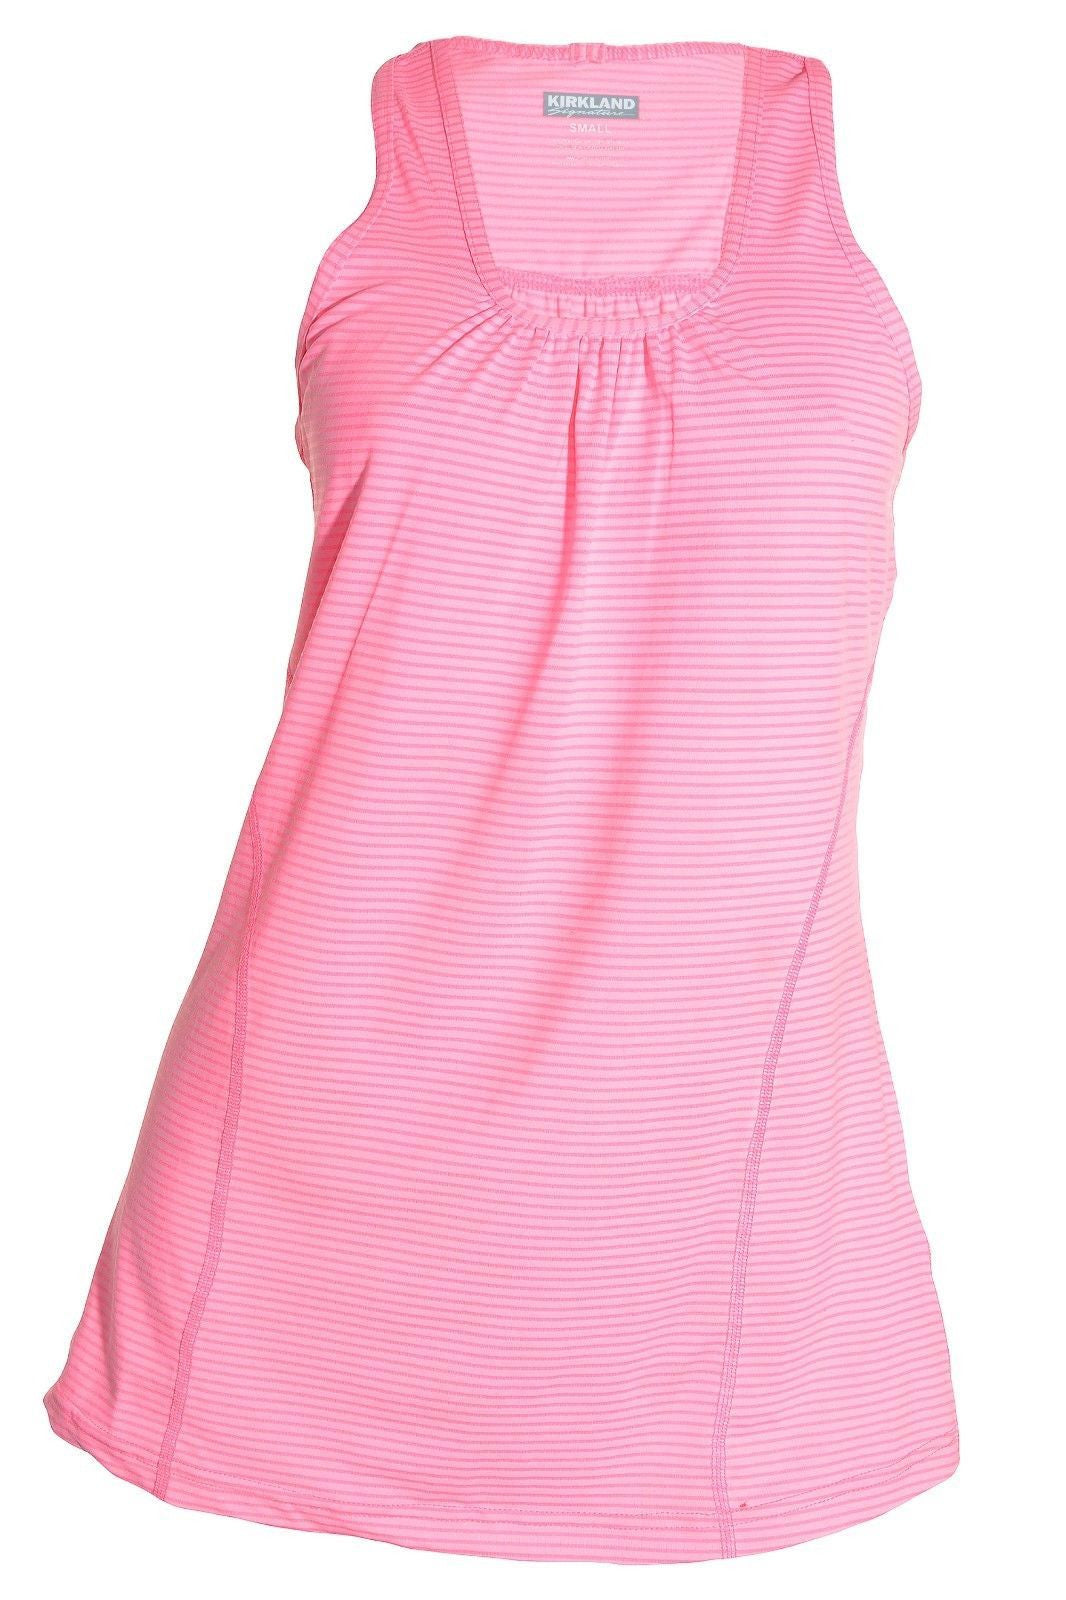 Kirkland  Womens Yoga Racer Back Tank Top